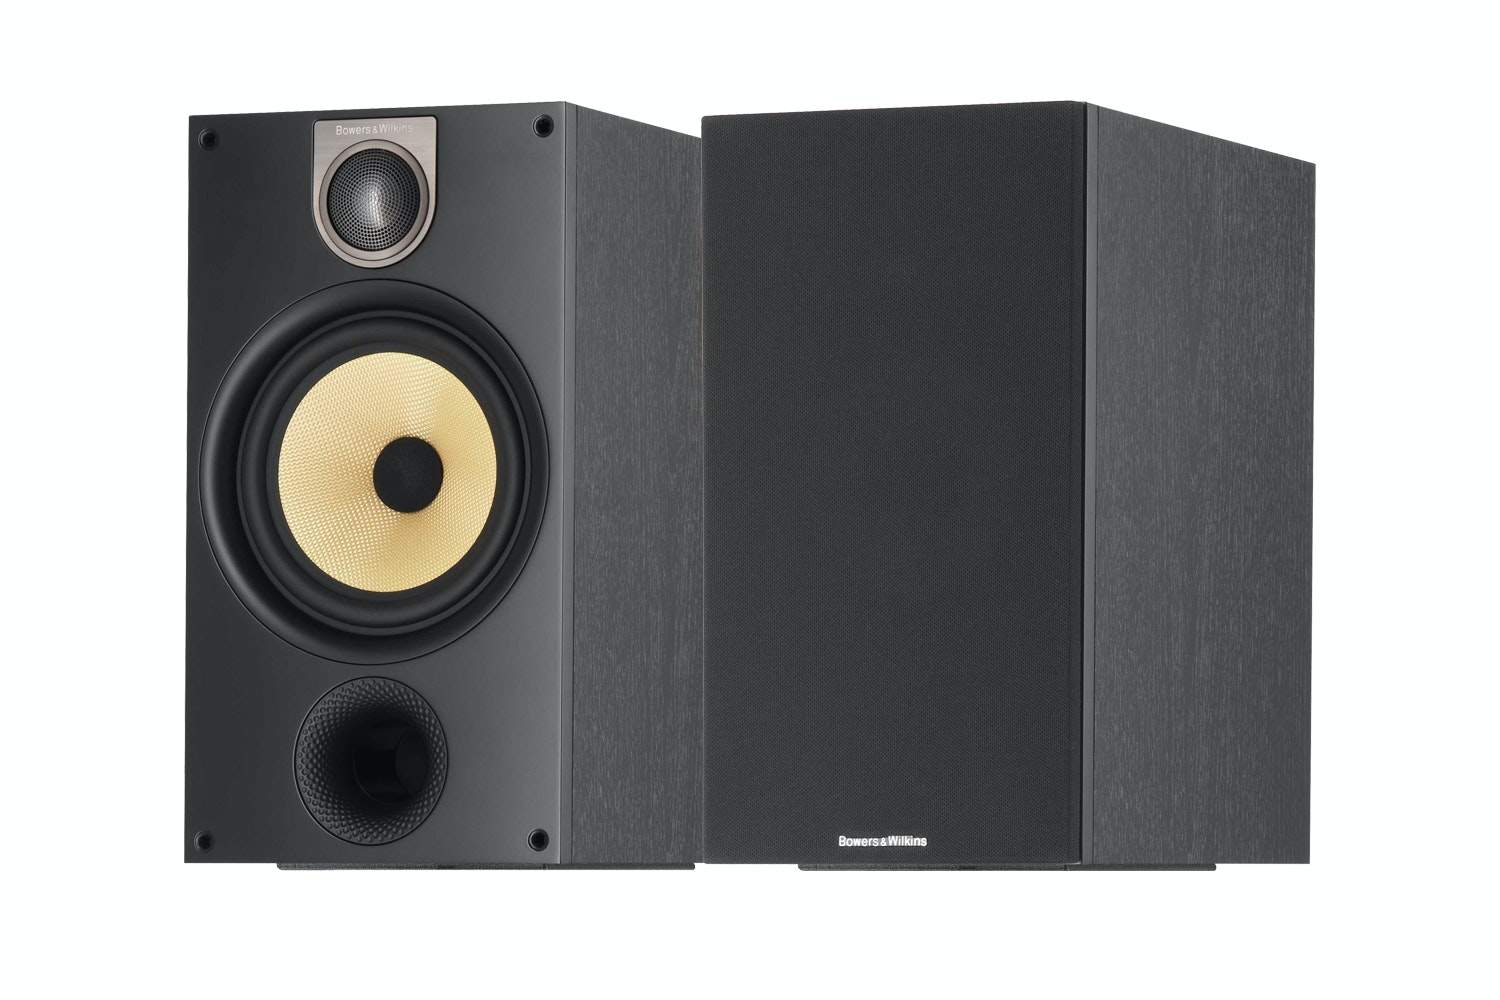 bowers and wilkins 685 s2. bowers \u0026 wilkins 685 series 2 bookshelf speakers and s2 i